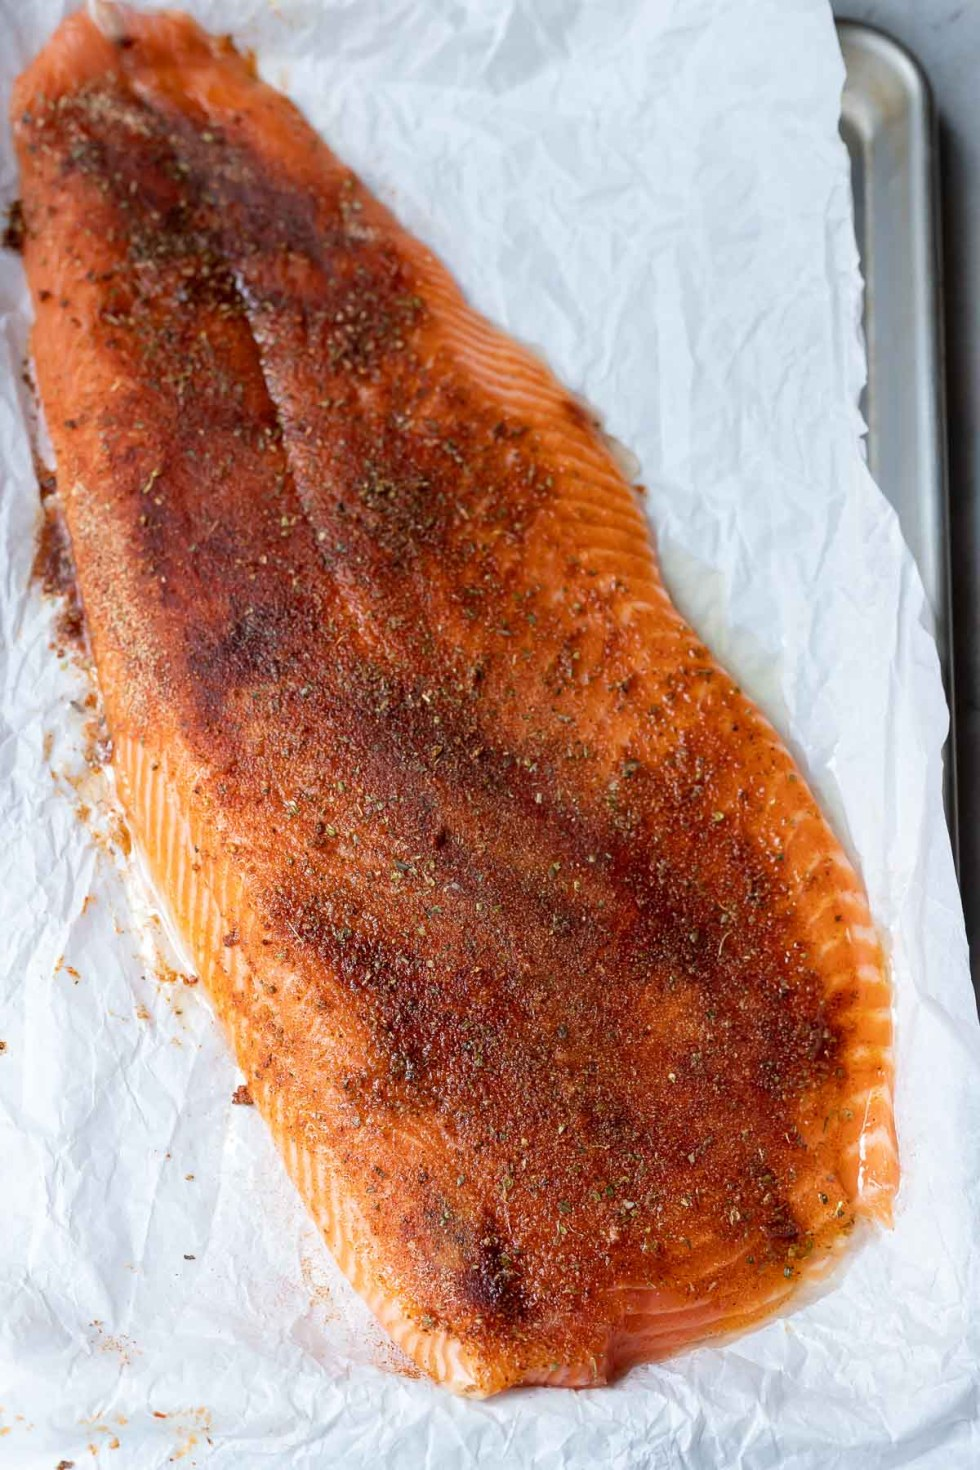 blackened salmon rubbed with spices and laying on parchment paper before baking